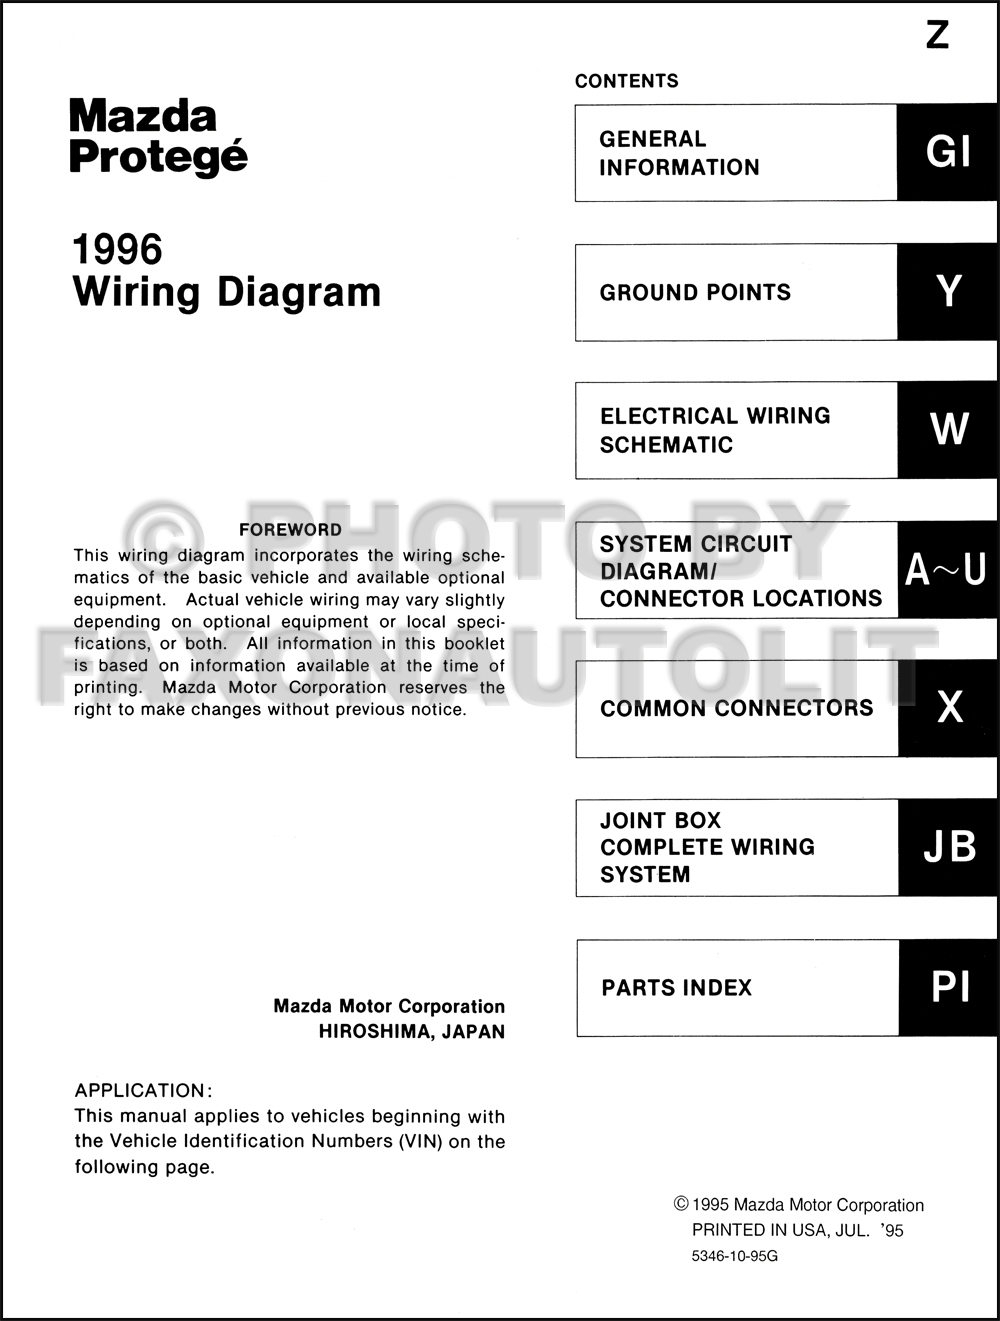 Mazda Wiring Schematics Library 2002 626 Cooling System Diagram 1996 Protege Manual Original Nissan Maxima